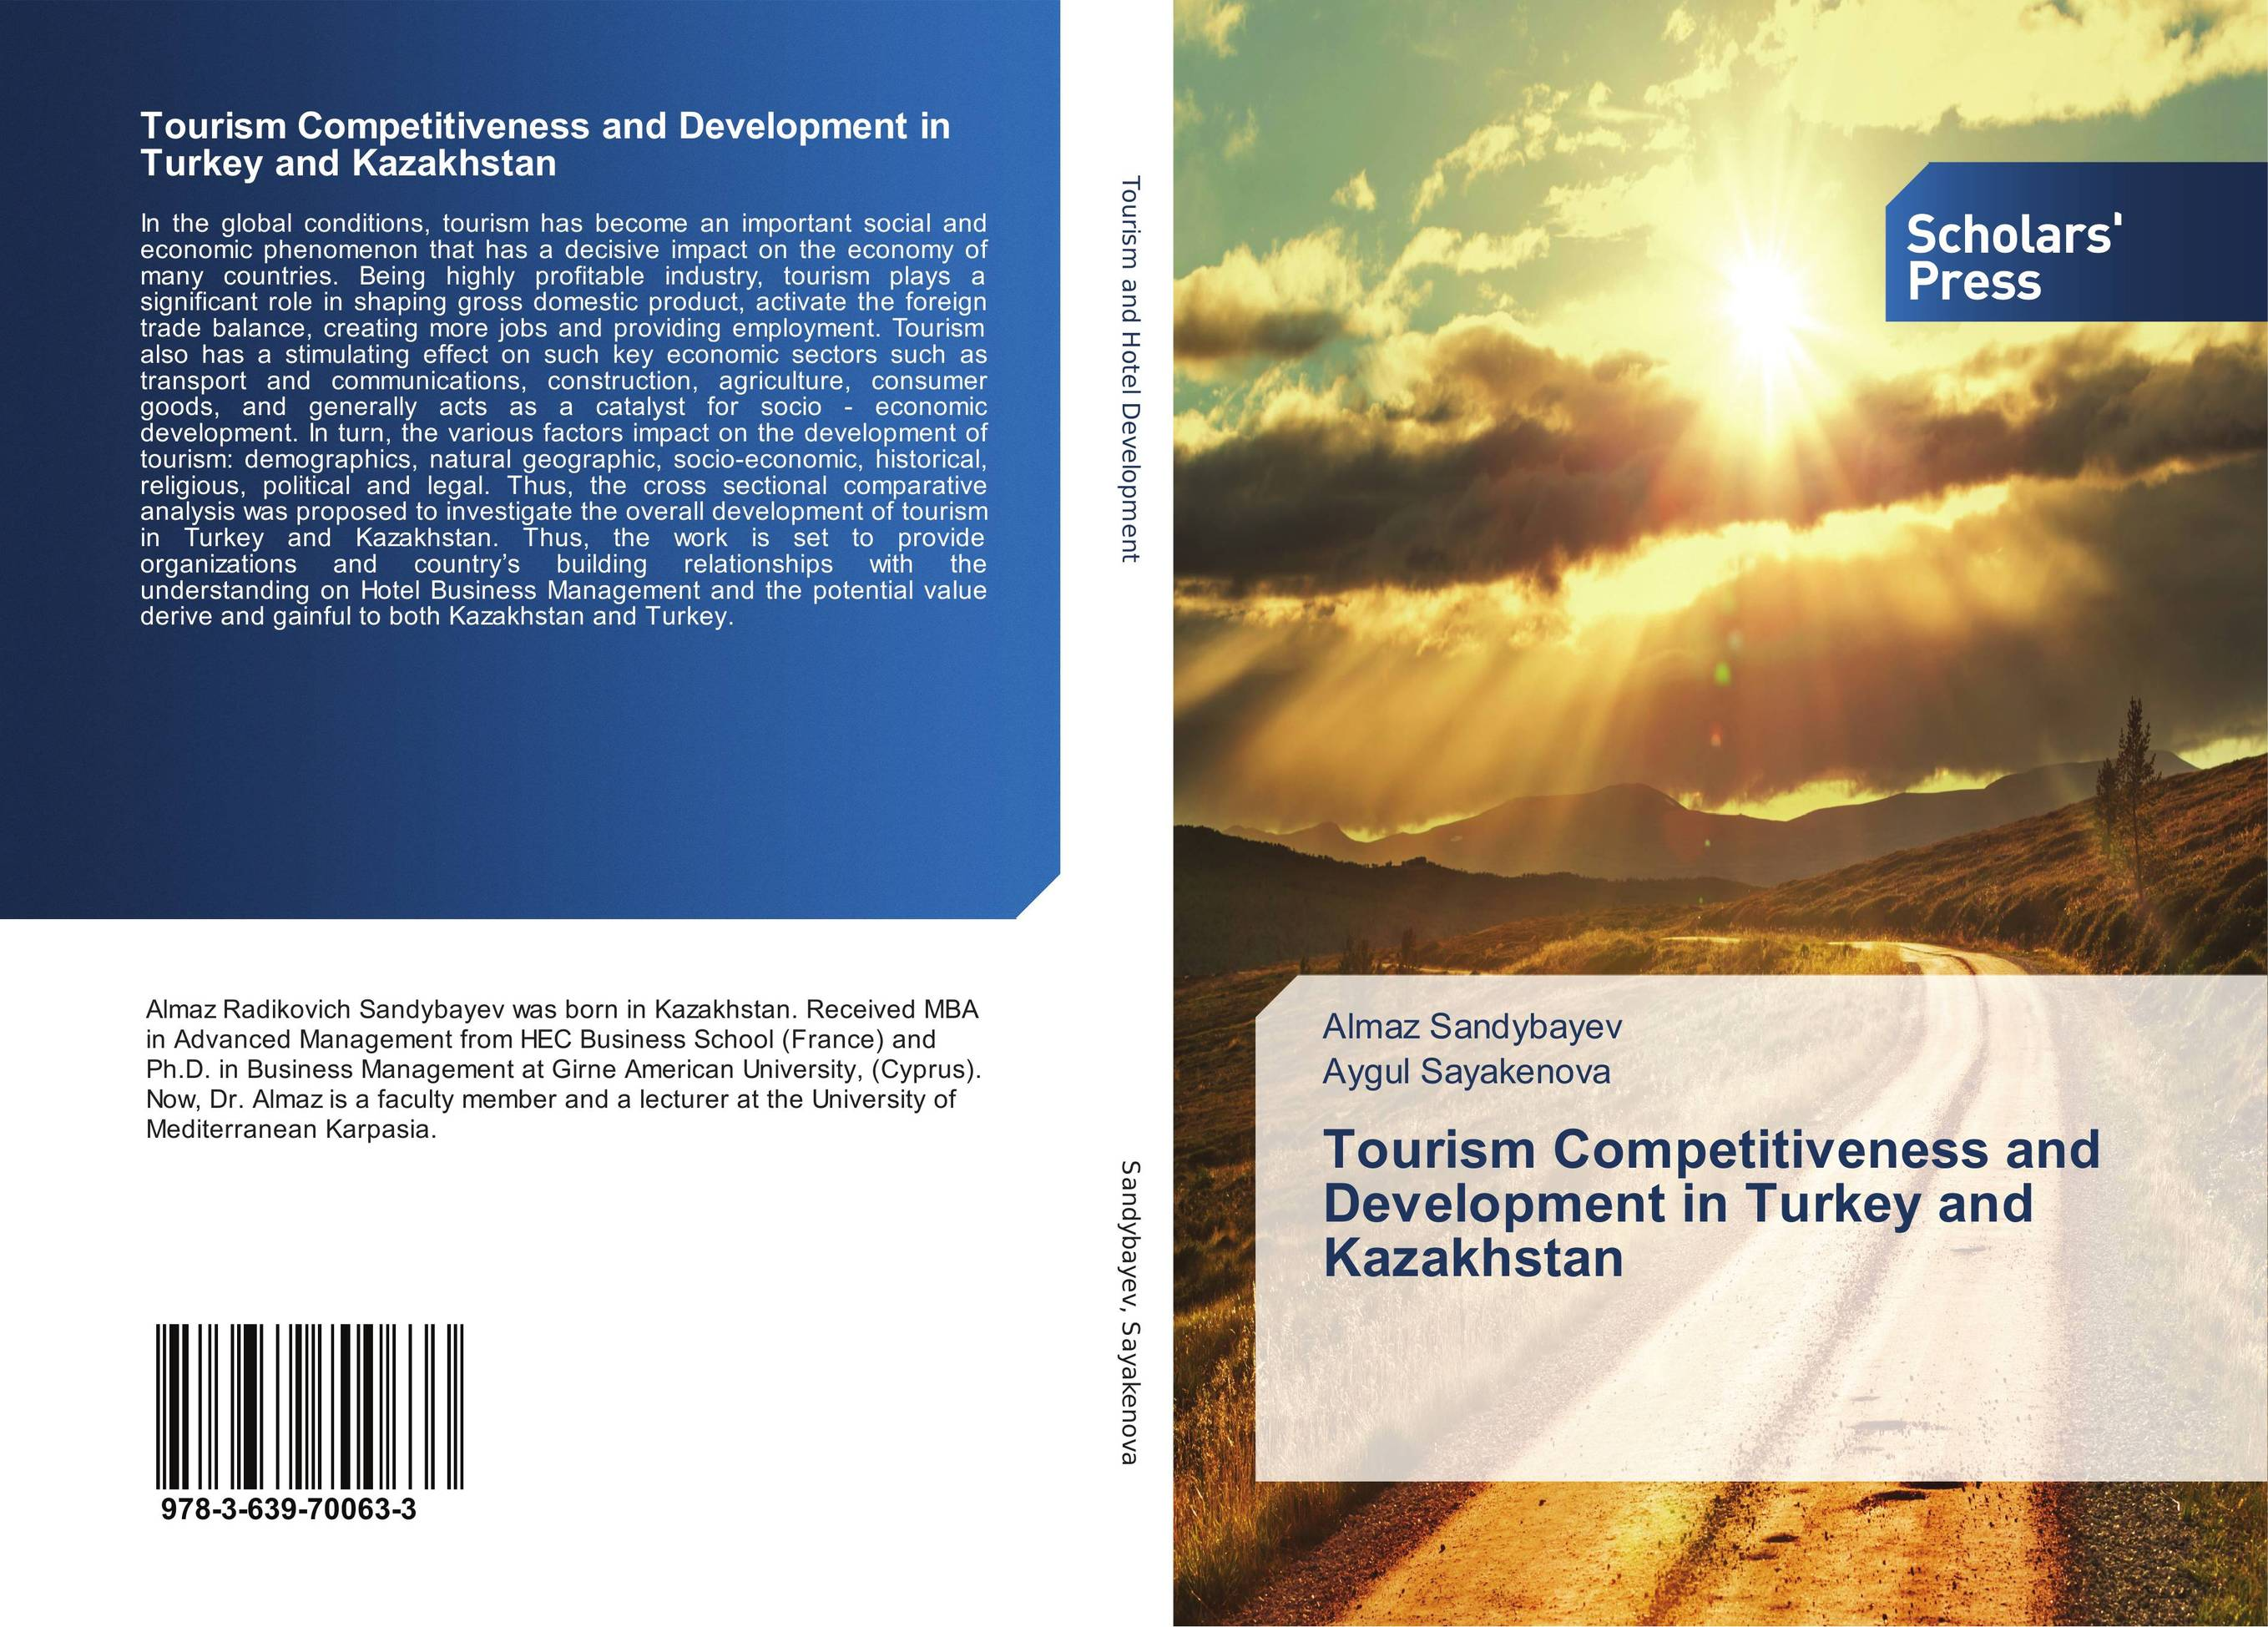 Tourism Competitiveness and Development in Turkey and Kazakhstan reuben okereke socio economic impact of a university campus development project